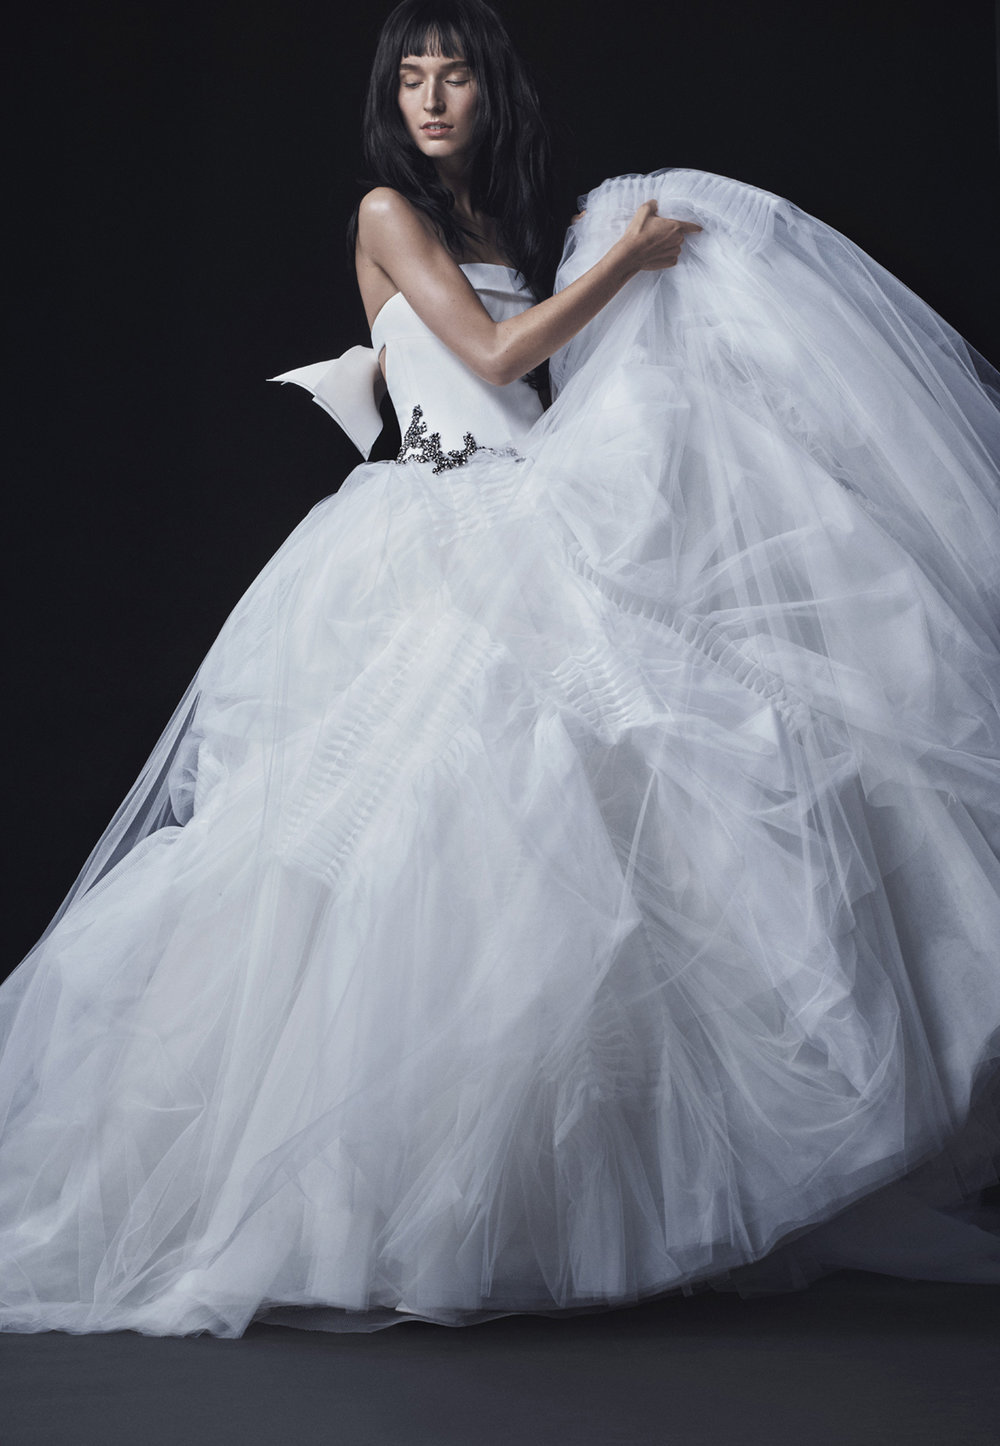 Season: Fall 2016    Gown name: Lola    Description: A soft white silk crepe strapless ball gown with dramatic pleated tulle skirt and crystal accent at the waist accented by a silk bow at the back.